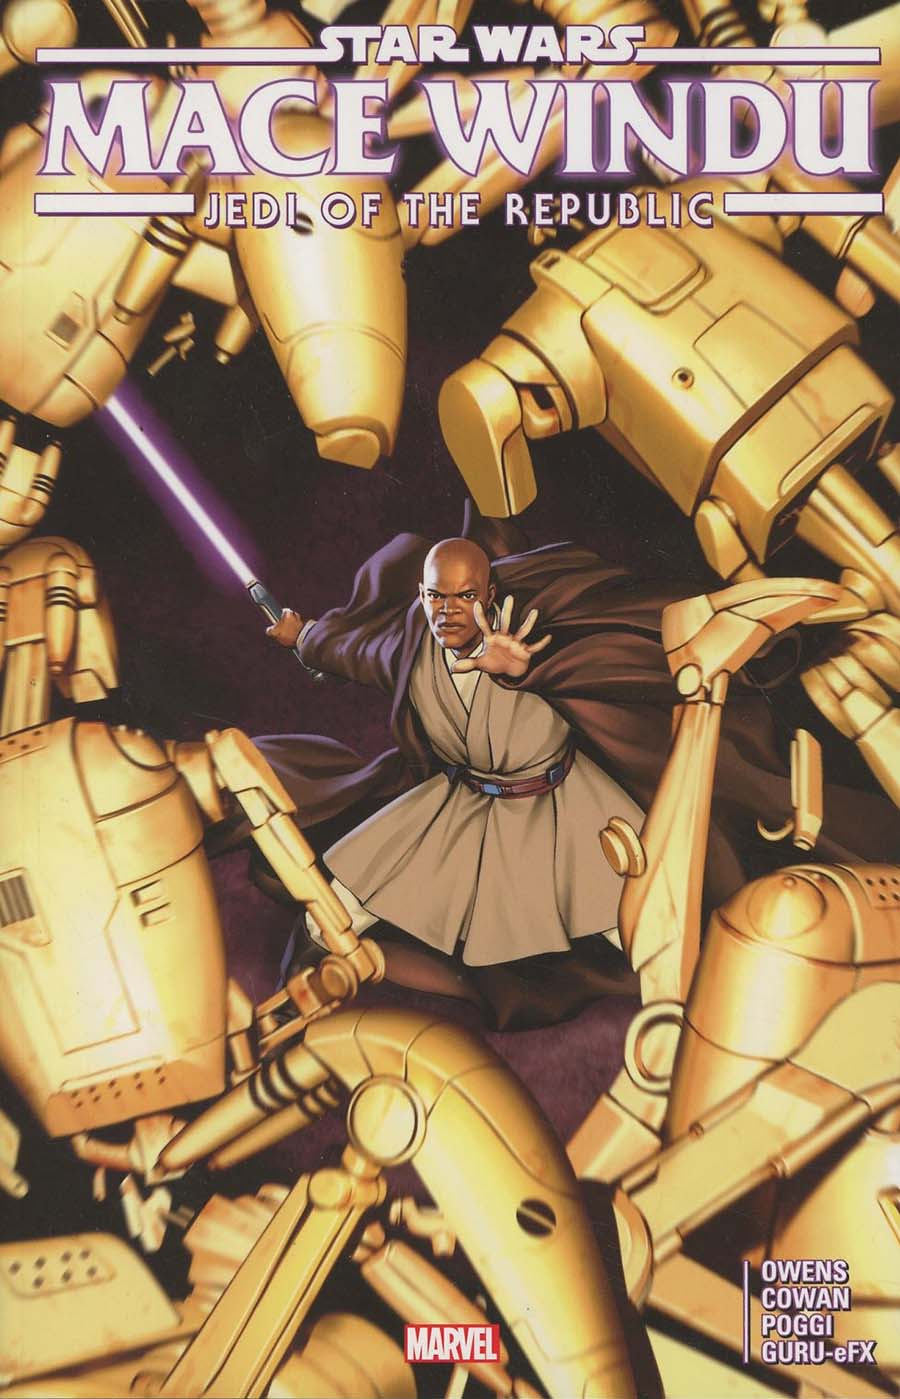 Star Wars Jedi Of The Republic Mace Windu TP